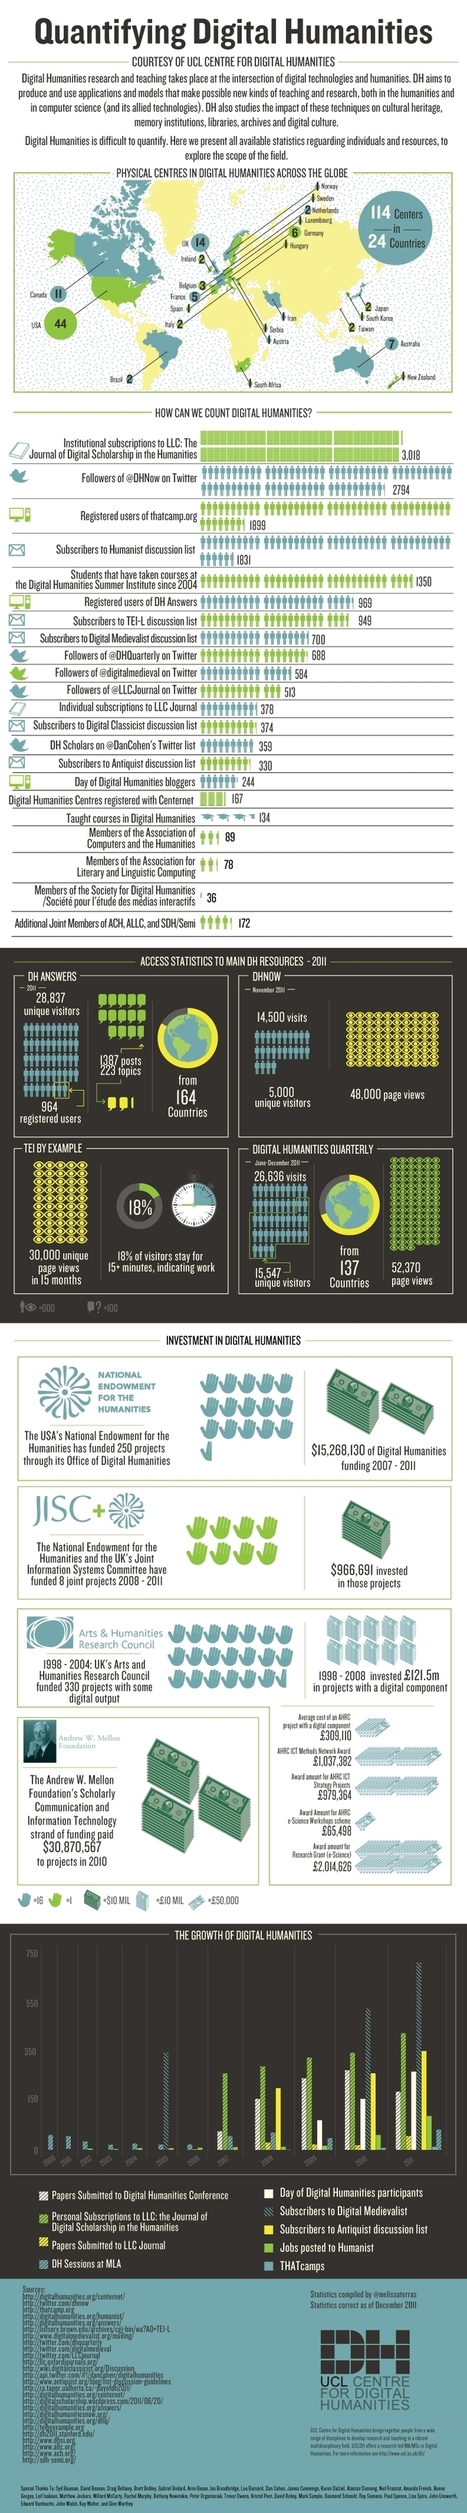 The Digital Humanities as Infographic | Digital Humanities Specialist | Media and Archeology | Scoop.it